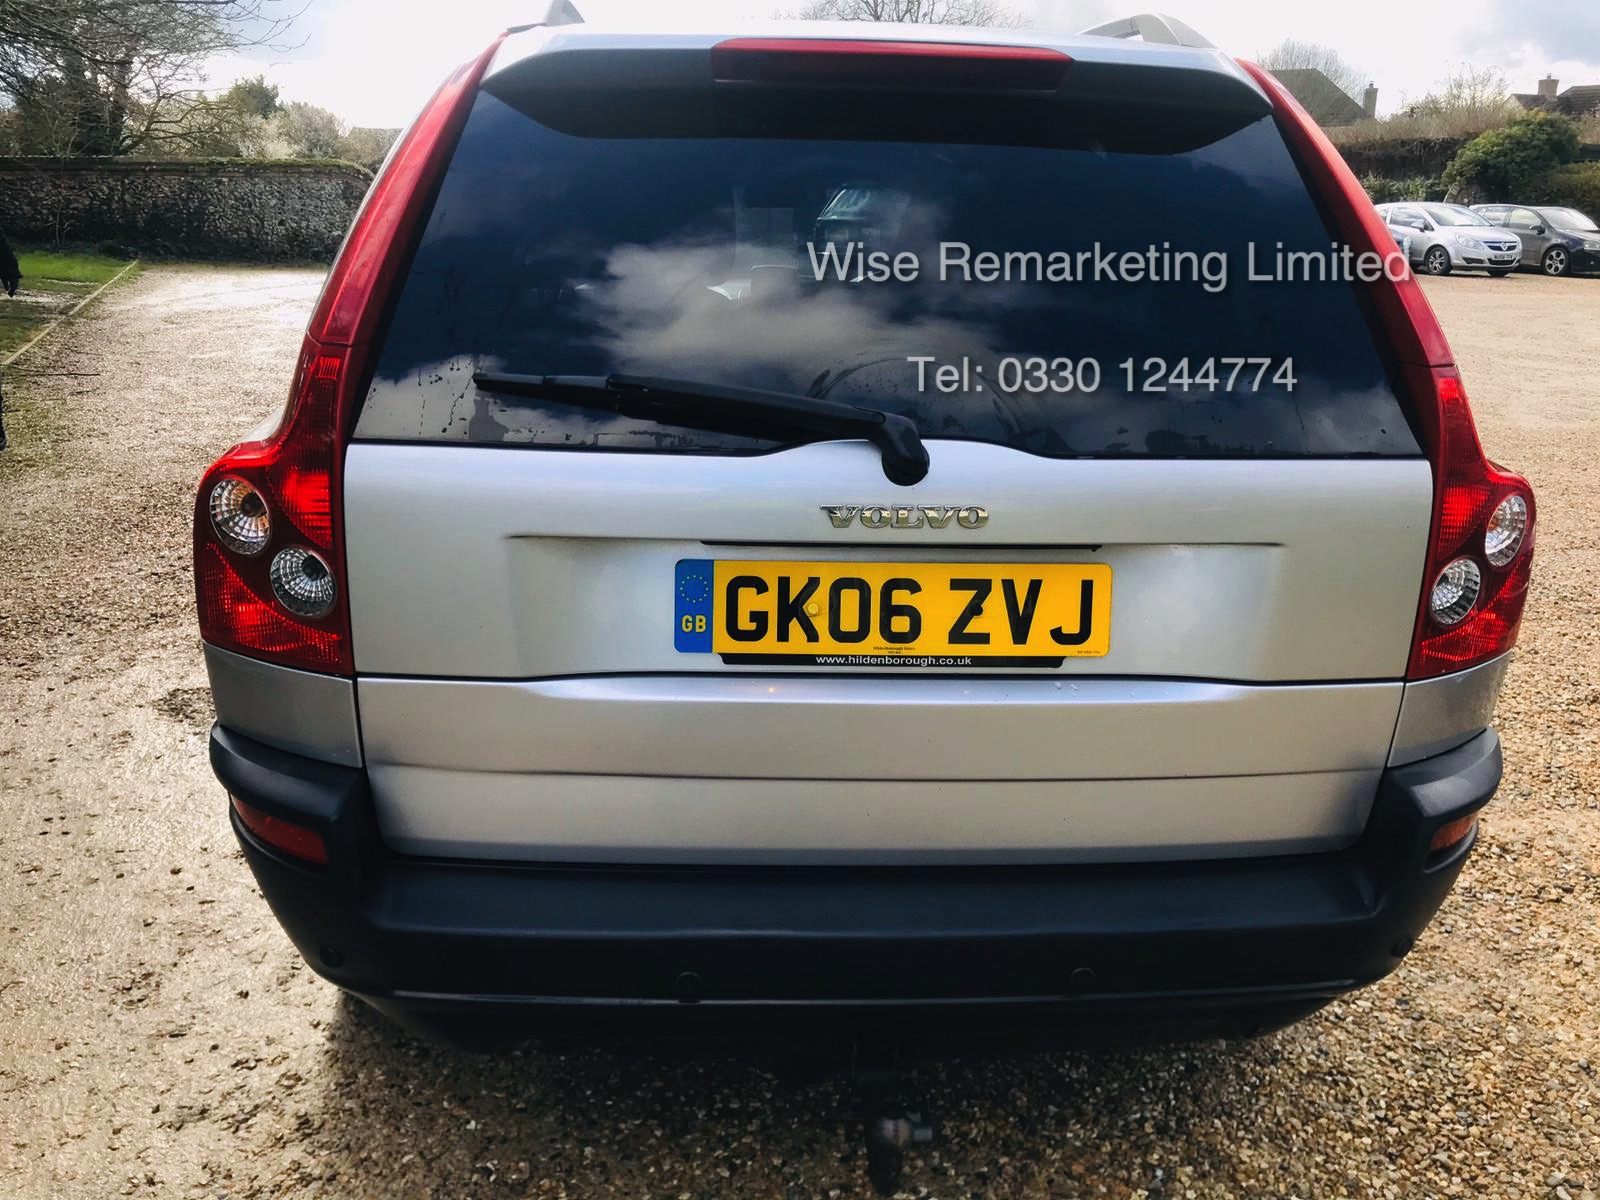 Volvo XC90 2.4 D5 Special Equipment Geartronic - 2006 06 Reg - Service History - 7 Seats - Sat Nav - Image 3 of 27